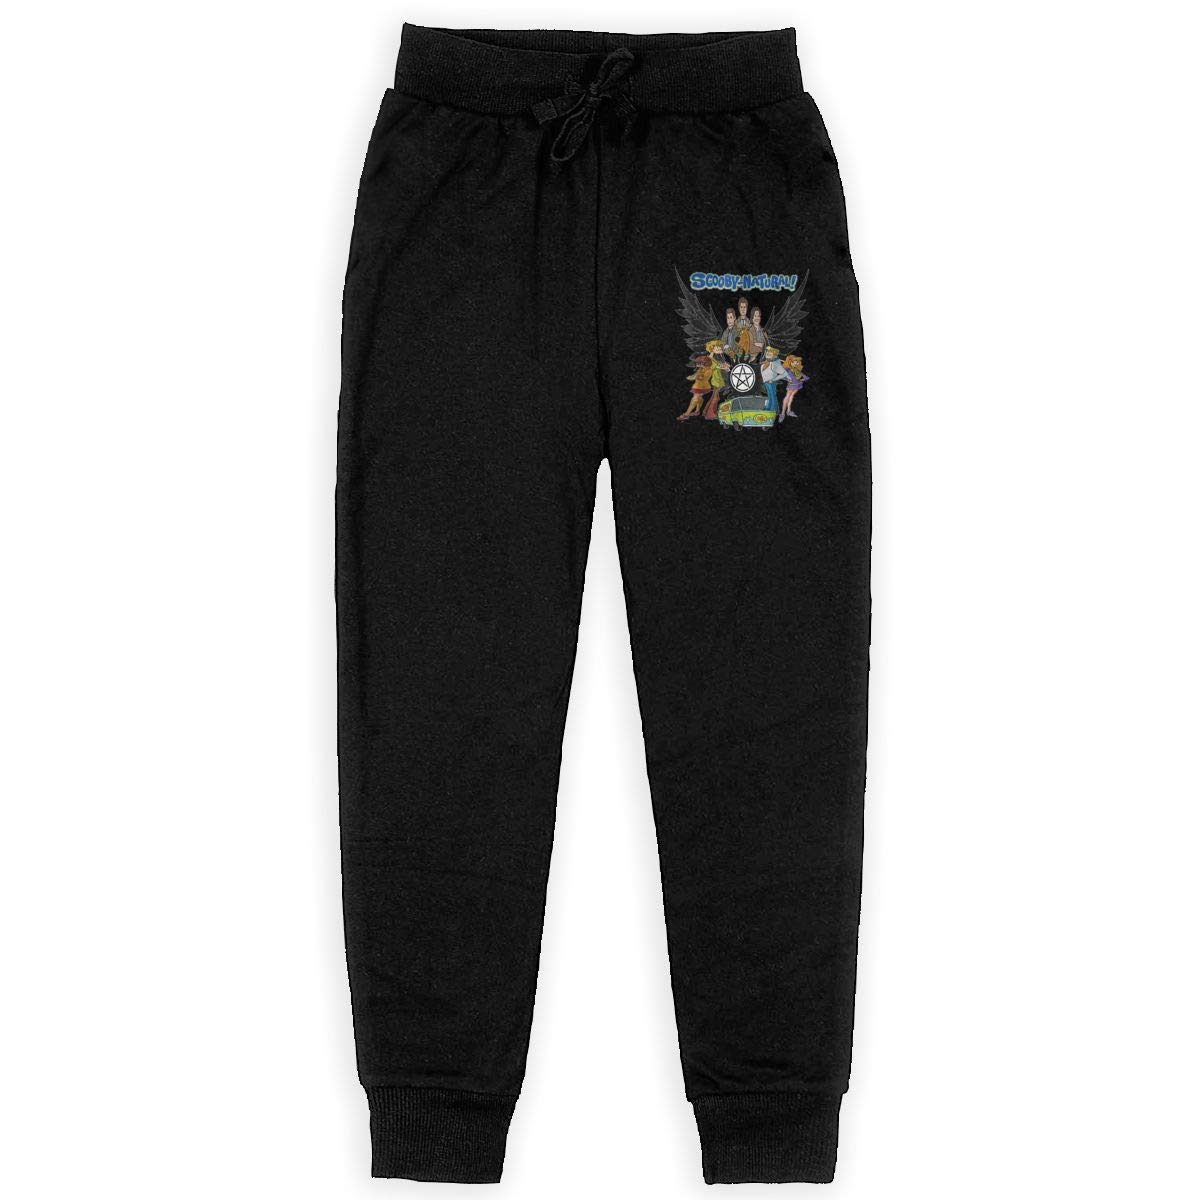 Scooby-Natural Mystery Team LETE Unisex Youth Active Basic Jogger Fleece Pants Training Pants with Pockets